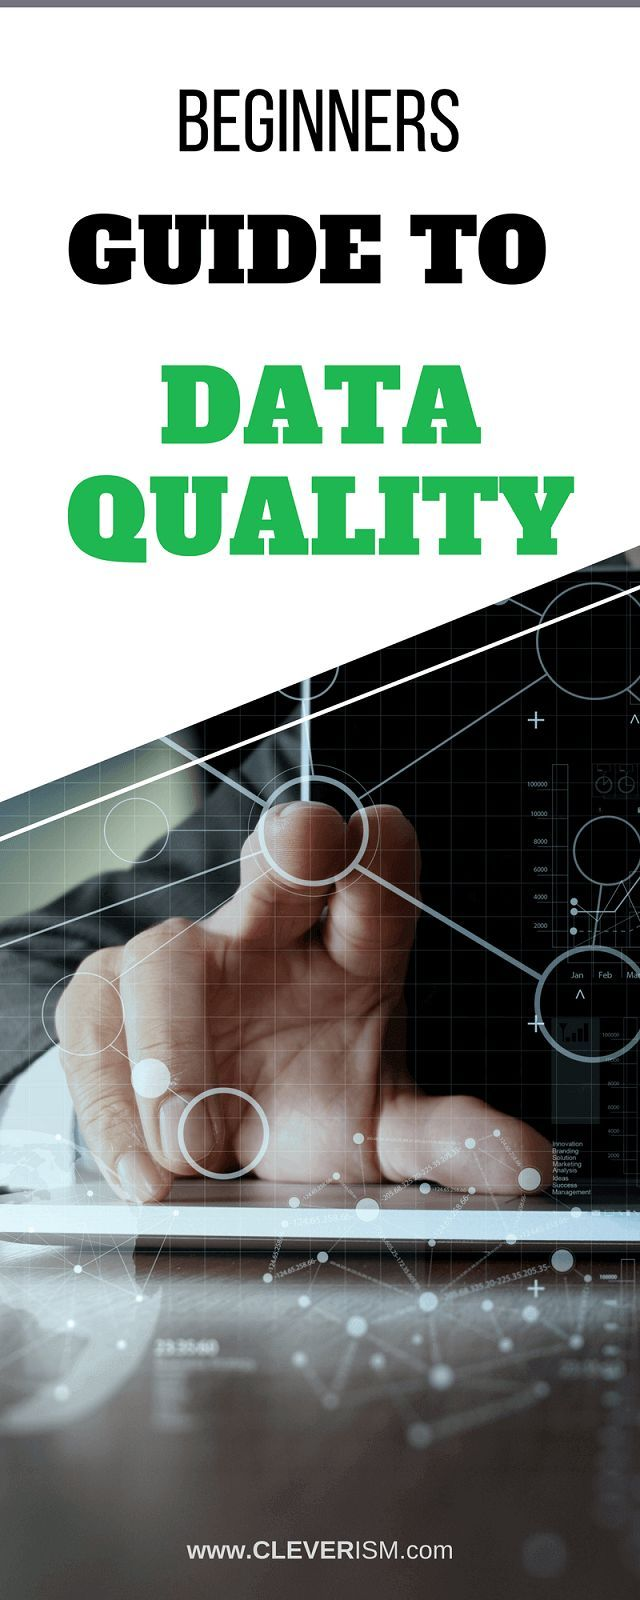 Beginners Guide to Data Quality. Data is important to businesses and your organi…